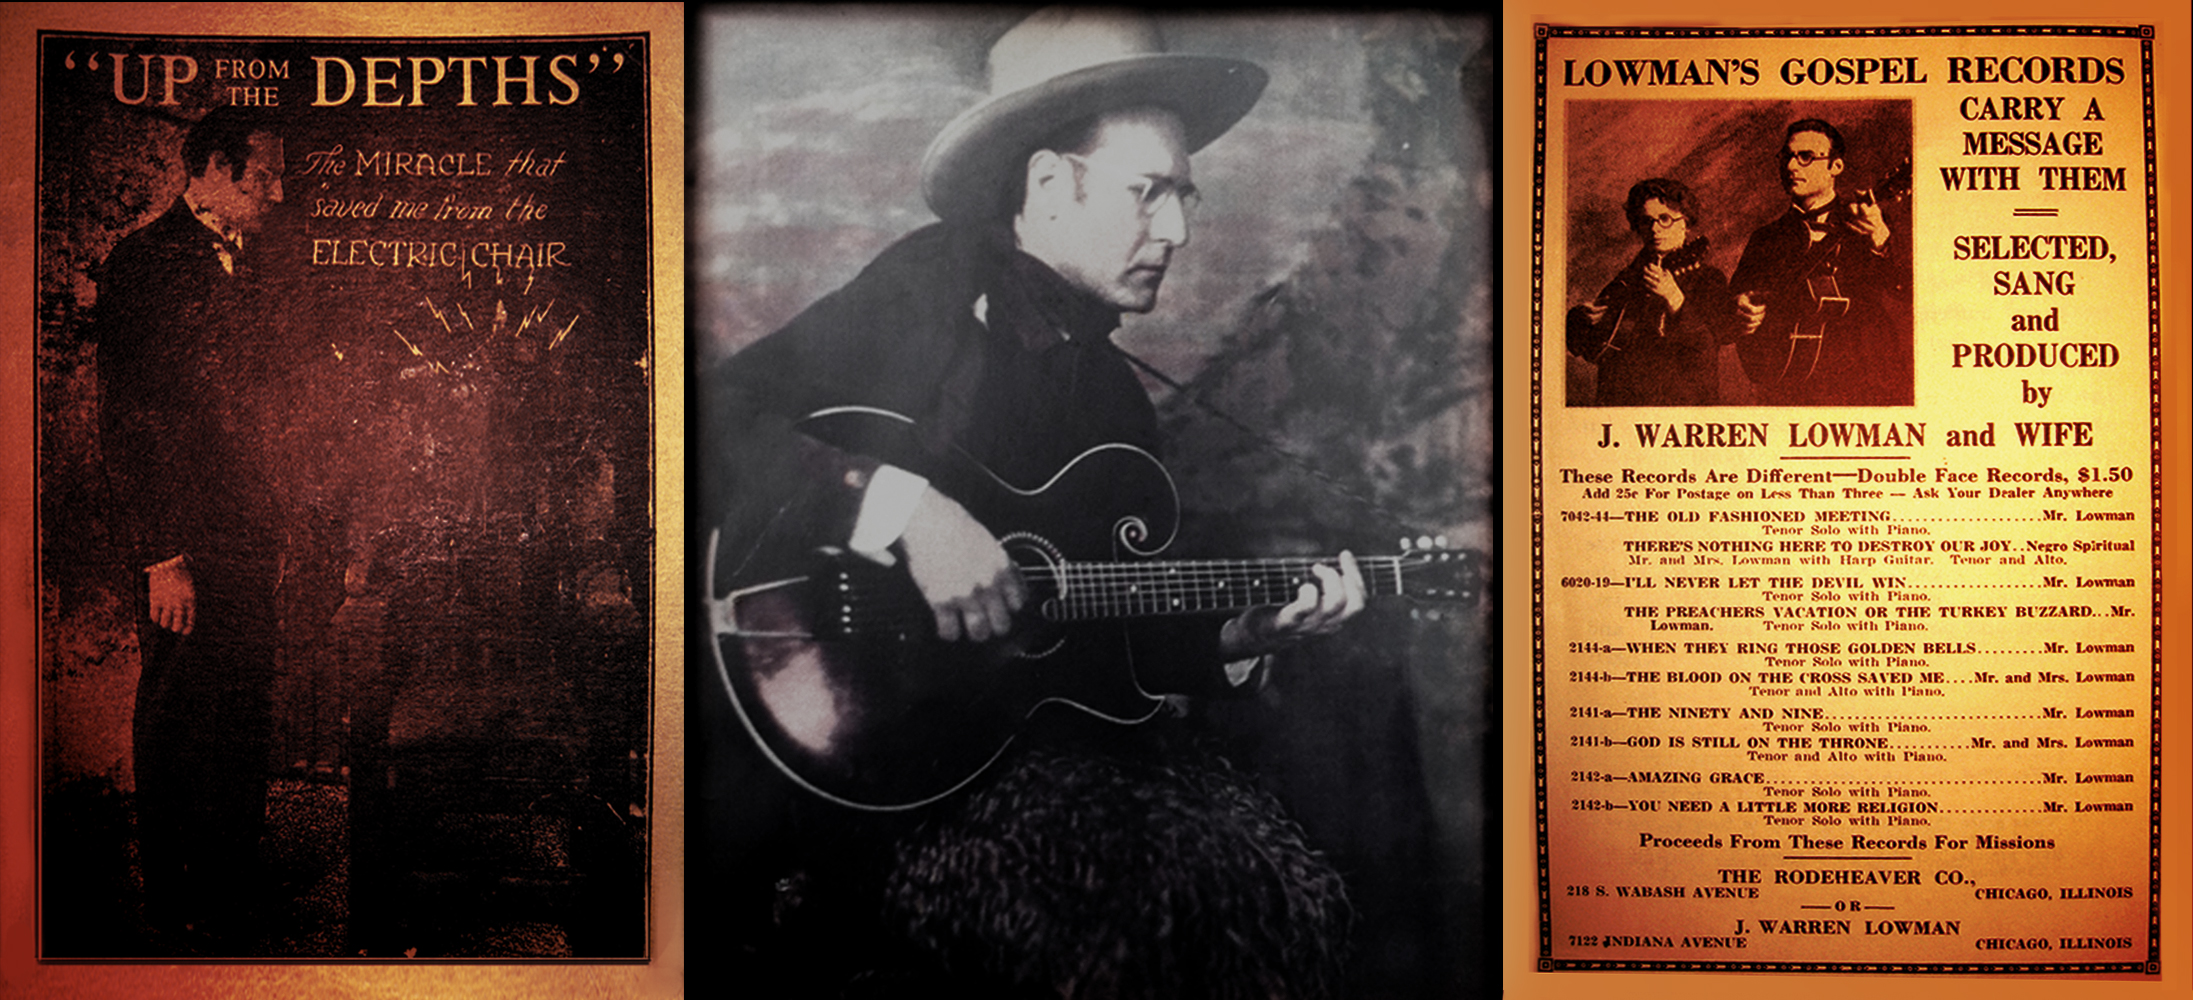 Great grandfather of Tim Lowman aka 'Low Volts'. 'Doc' Lowman was a traveling Gospel singer framed for murder and sentenced to the ELECTRIC CHAIR. Left: His book cover. Center: Playing a Gibson Style 'O' guitar in Stetson Hat and buffalo chaps. Right: Ad for double face gospel records